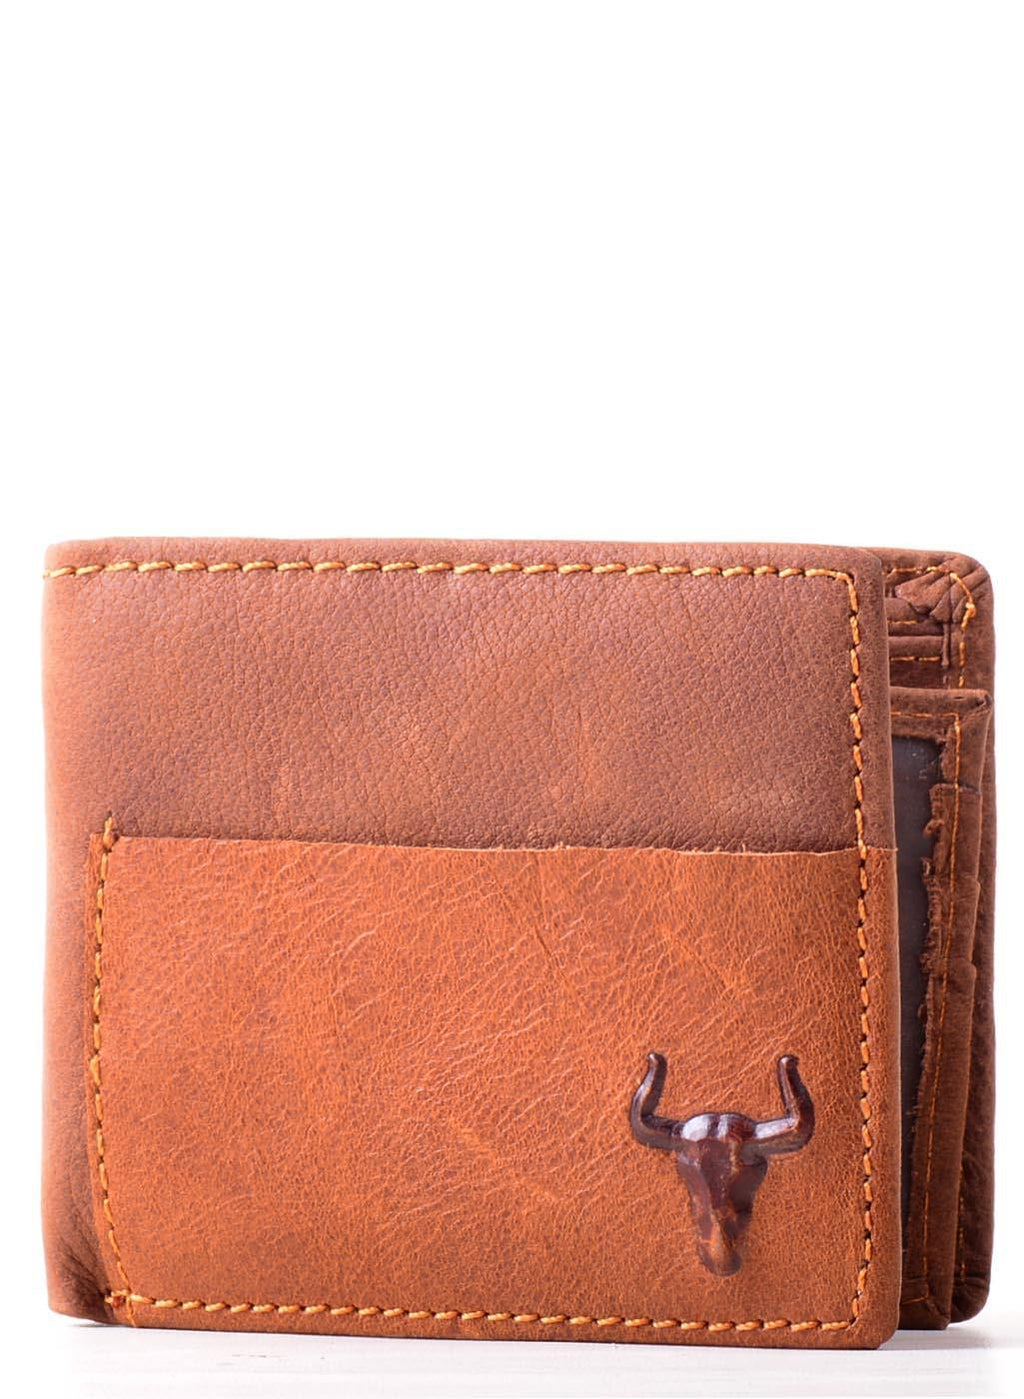 EthniCache Wallet Civil Handmade Pure Leather Wallet